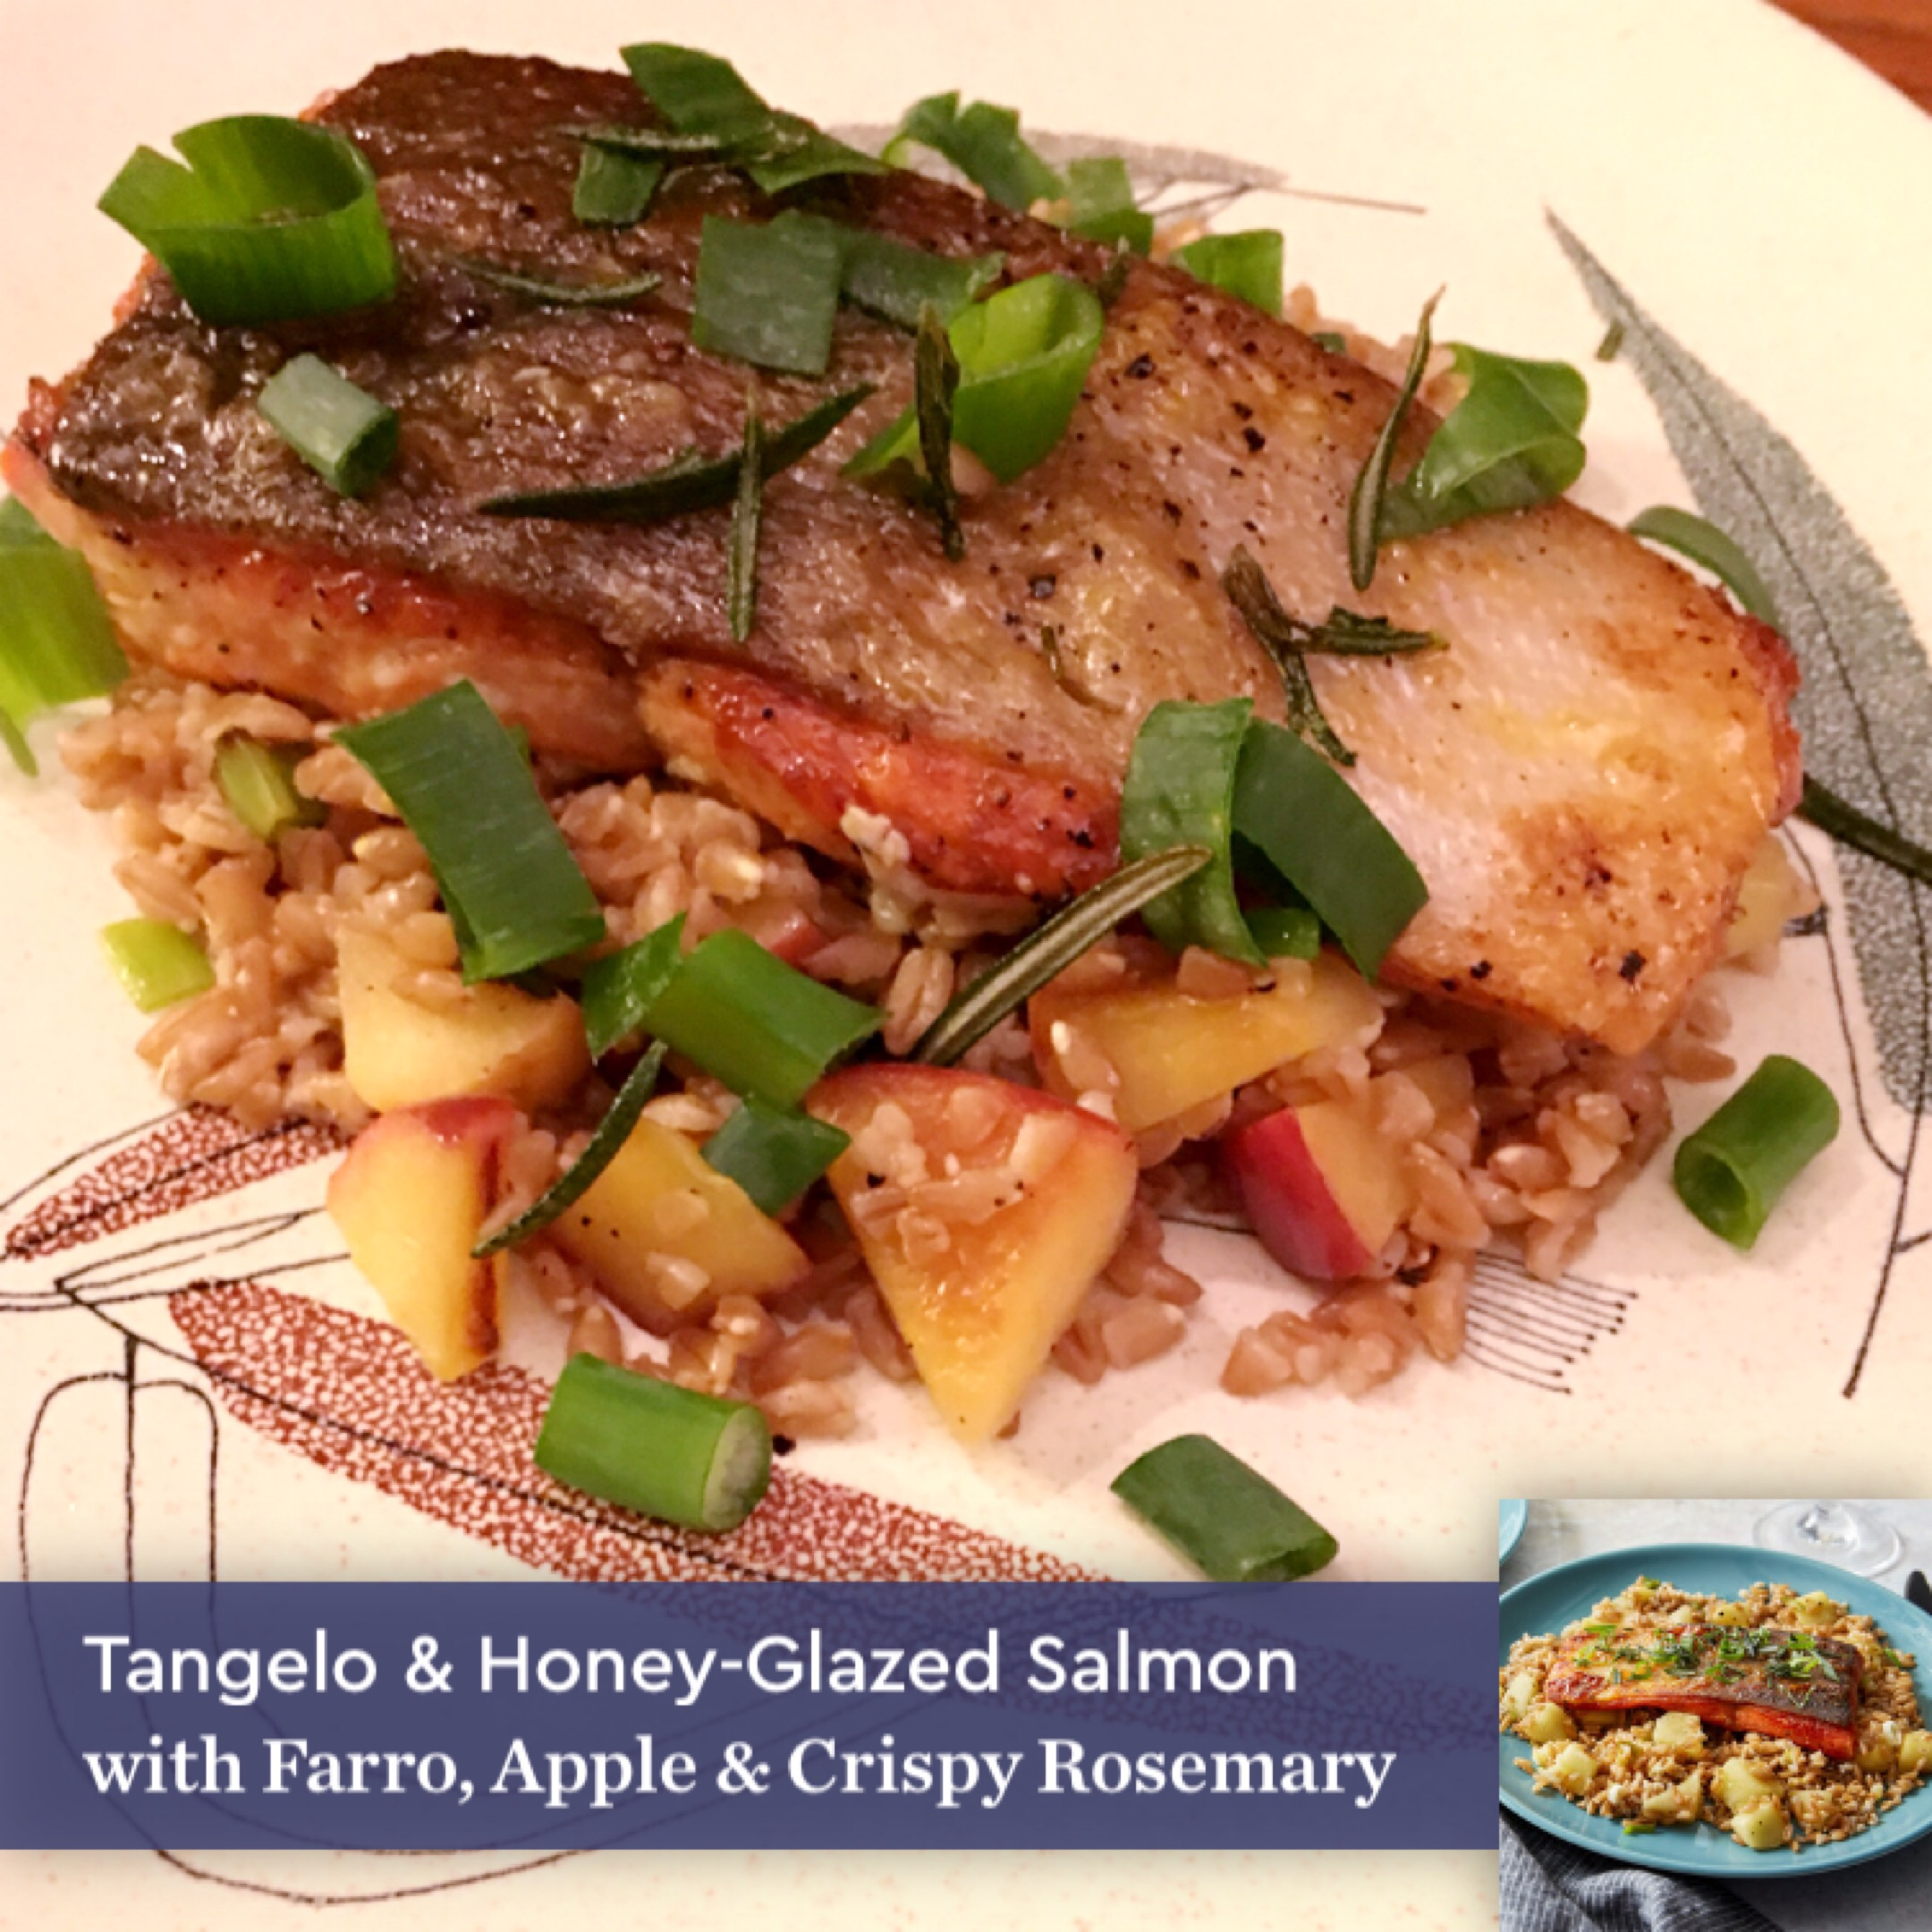 Blue apron questions - Take A Look At The Pictures From My First Box Below I Used The Handy Blue Apron App For Filters And The Recipe Captions